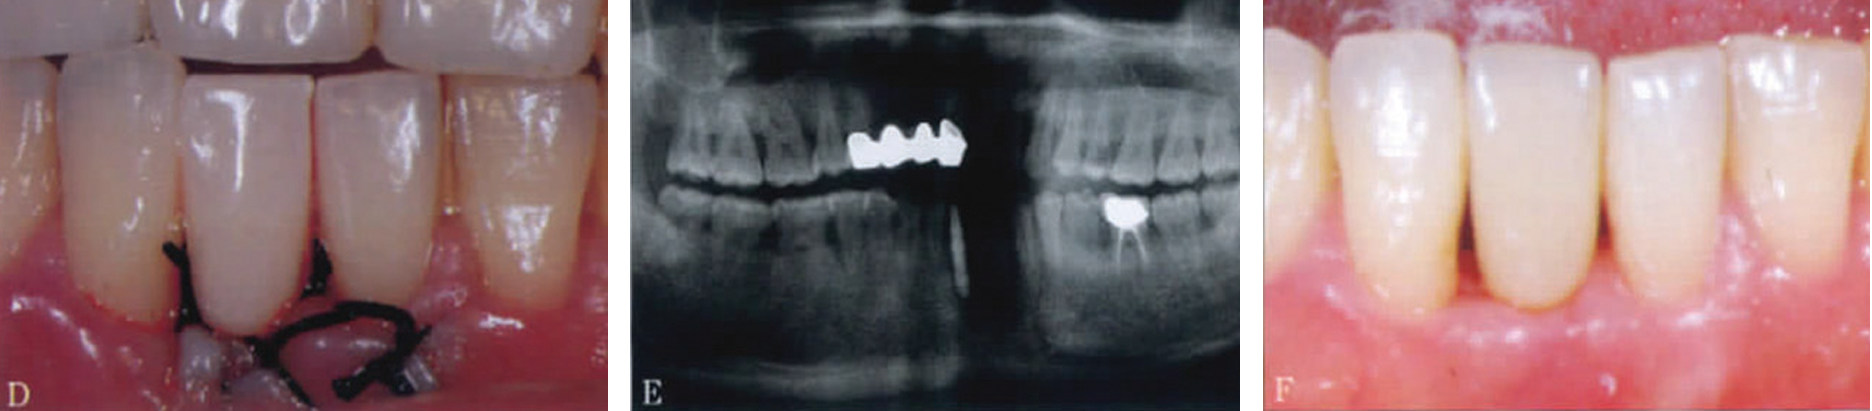 Immediate restoration implant with mini-implant of case 3.